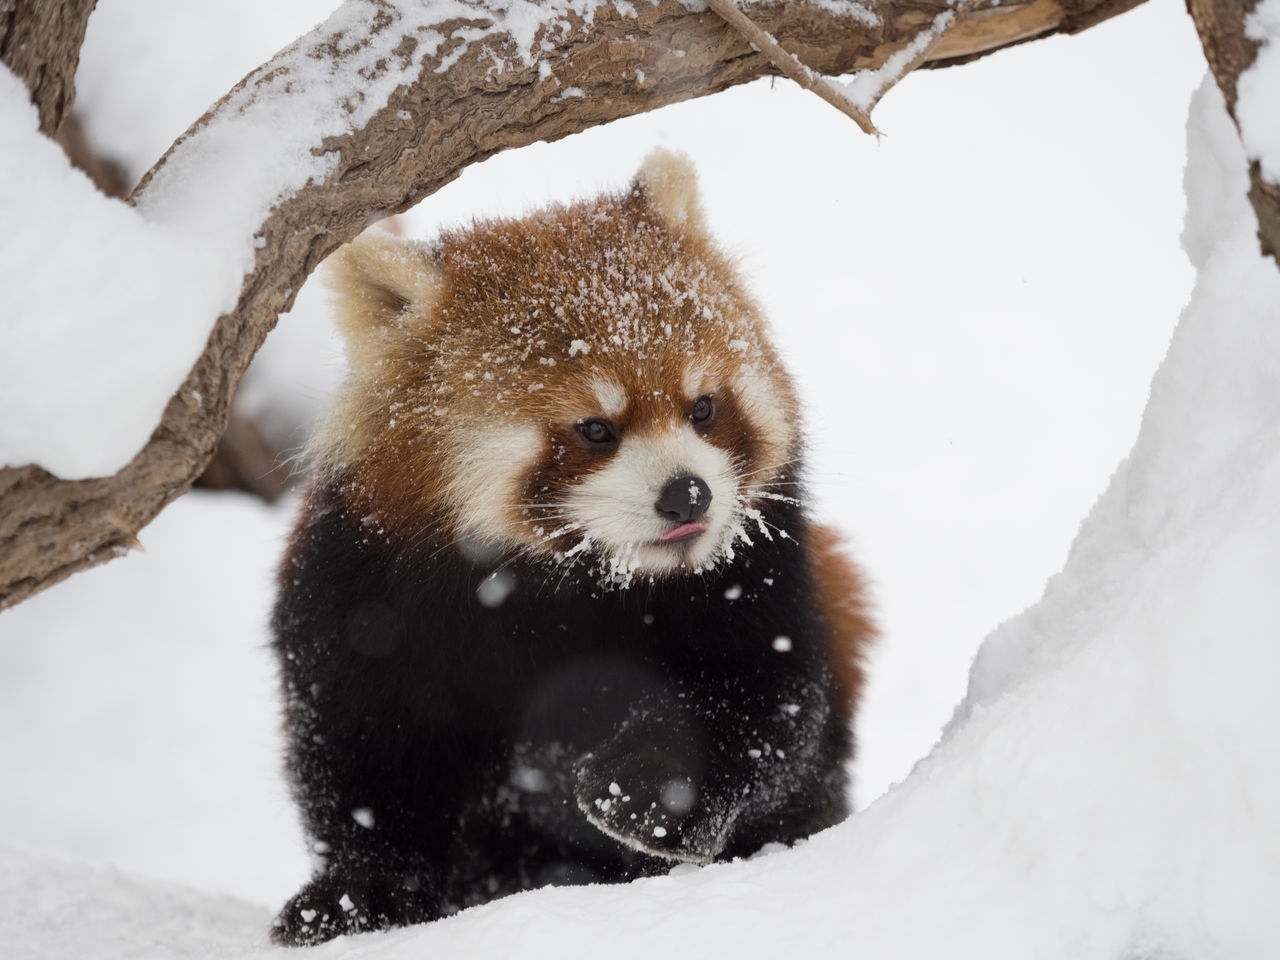 Ailurus Fulgens Animal Themes Animal Wildlife Animals In The Wild Close-up Cold Temperature Day Frozen Lesser Panda Mammal Nature No People One Animal Outdoors Raccoon Red Panda Snow Snowing Tree Weather Winter Zoo